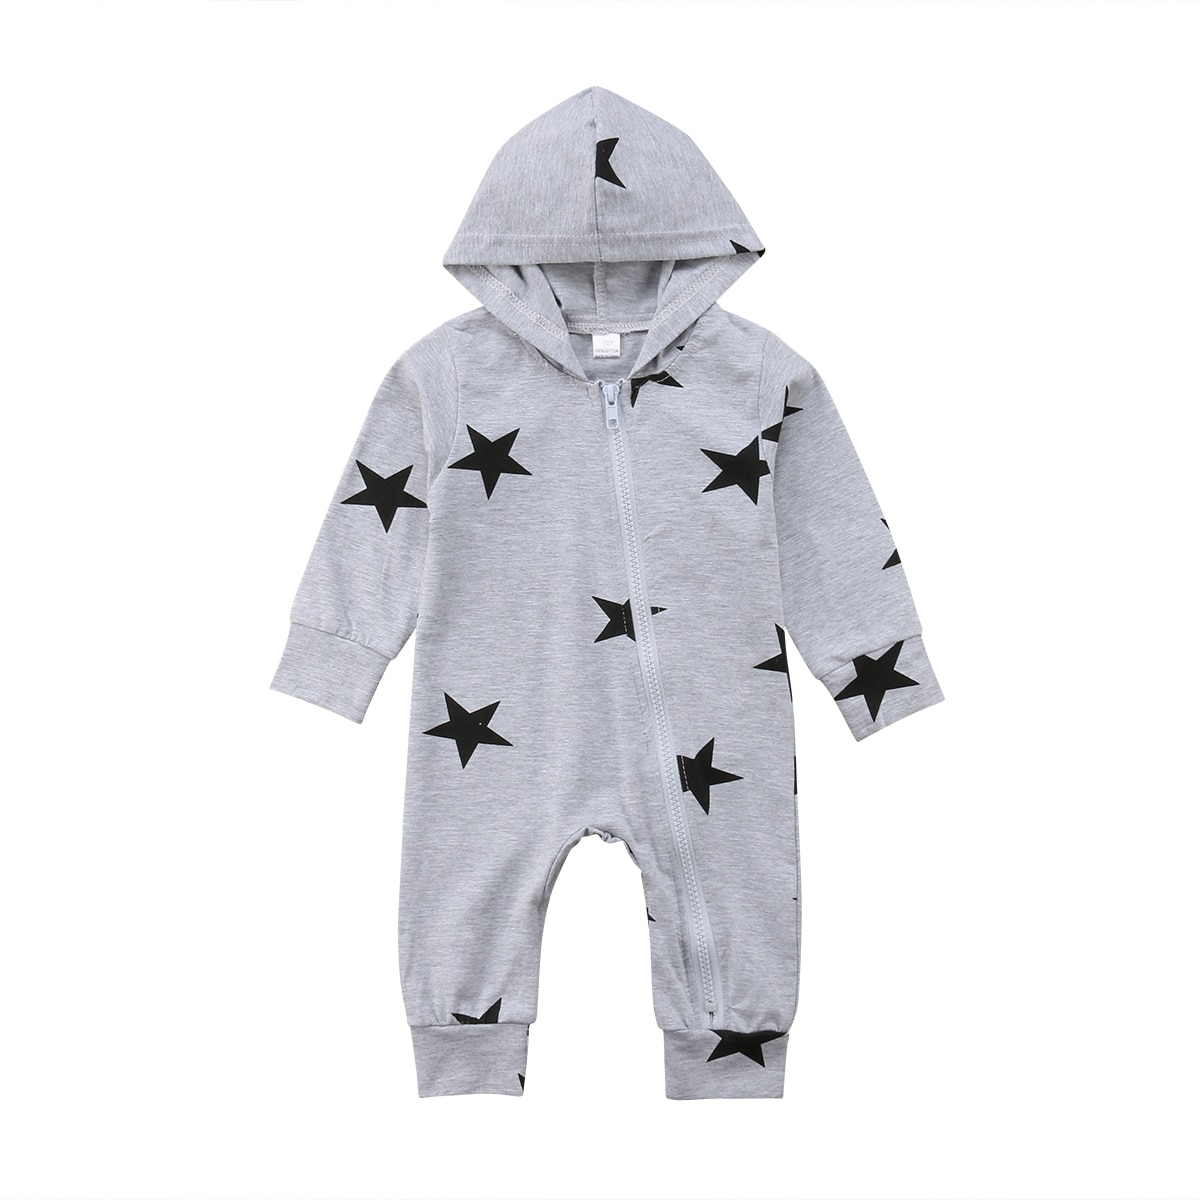 New Fashion Hot Toddler Newborn Baby Boy Girls Hoodie Jumpsuit Long Sleeve Kid Romper Hooded Clothes Children's Clothing Outfits